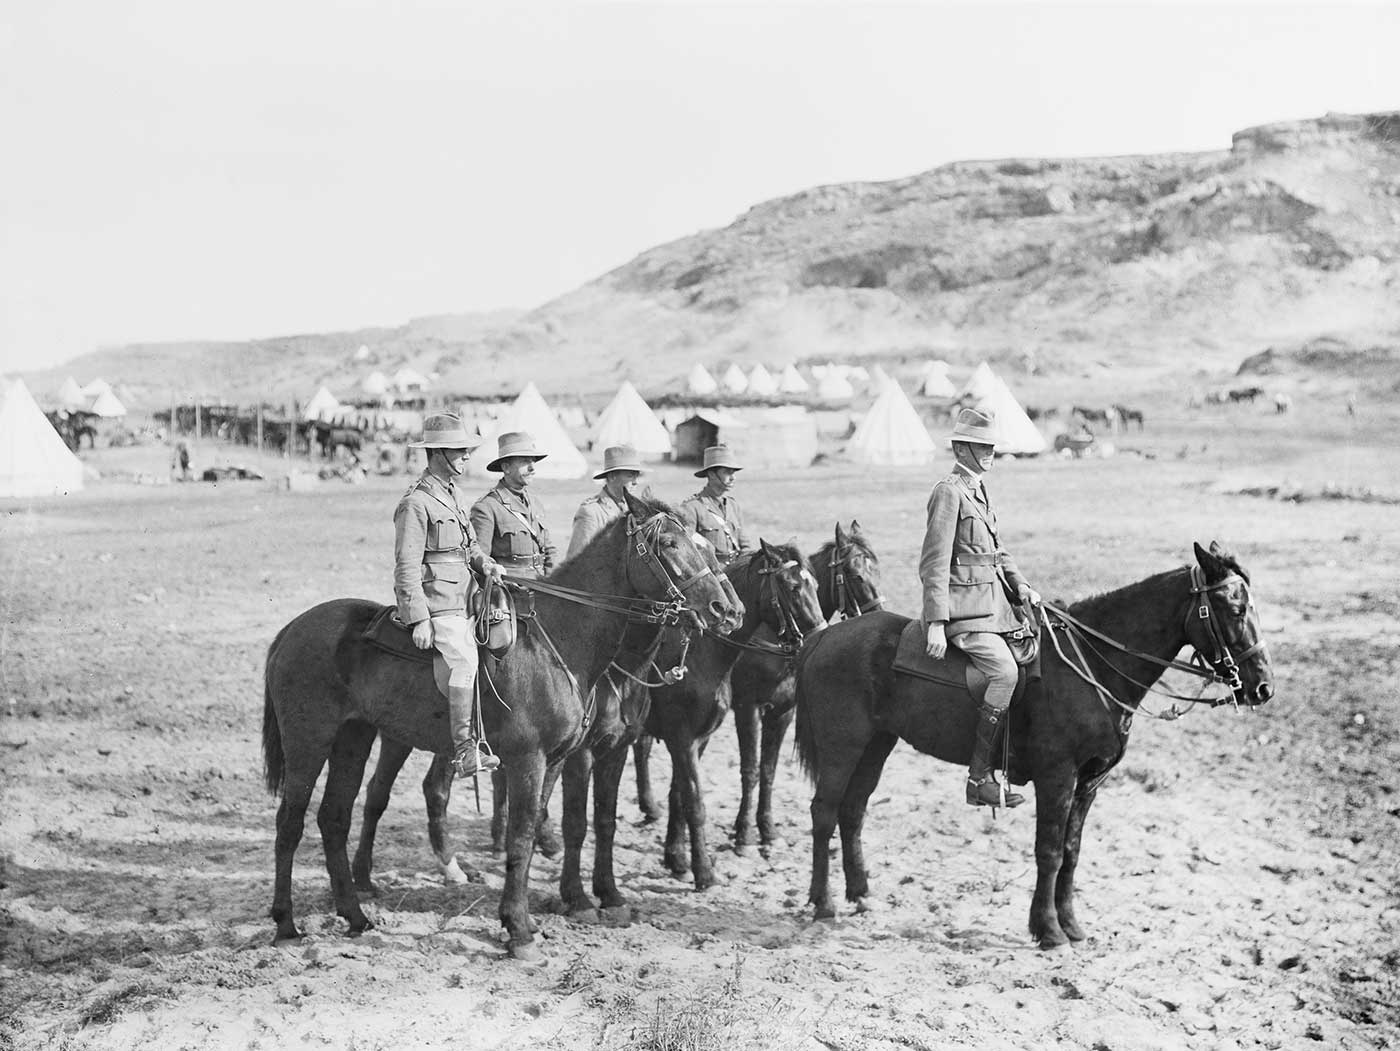 Black and white photograph showing five men in military uniforms atop horses. Behind them are rows of tents and a line of horses in a desert landscape. - click to view larger image